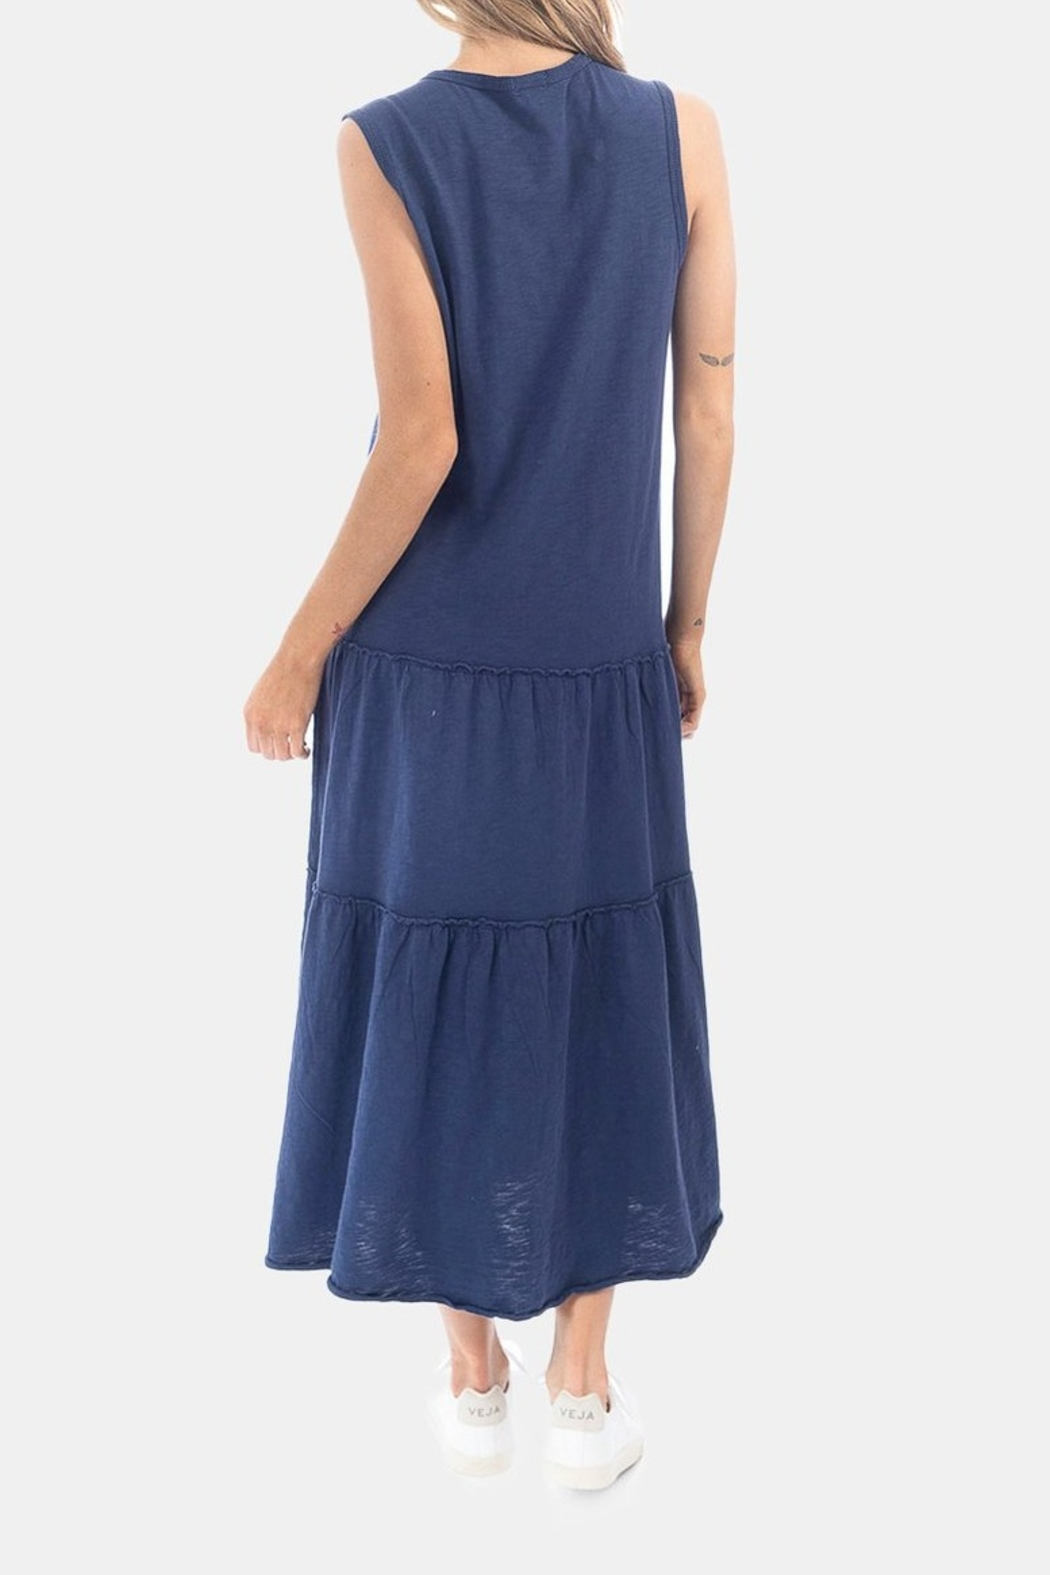 Dylan by True Grit Tiered Crew Dress - Side Cropped Image